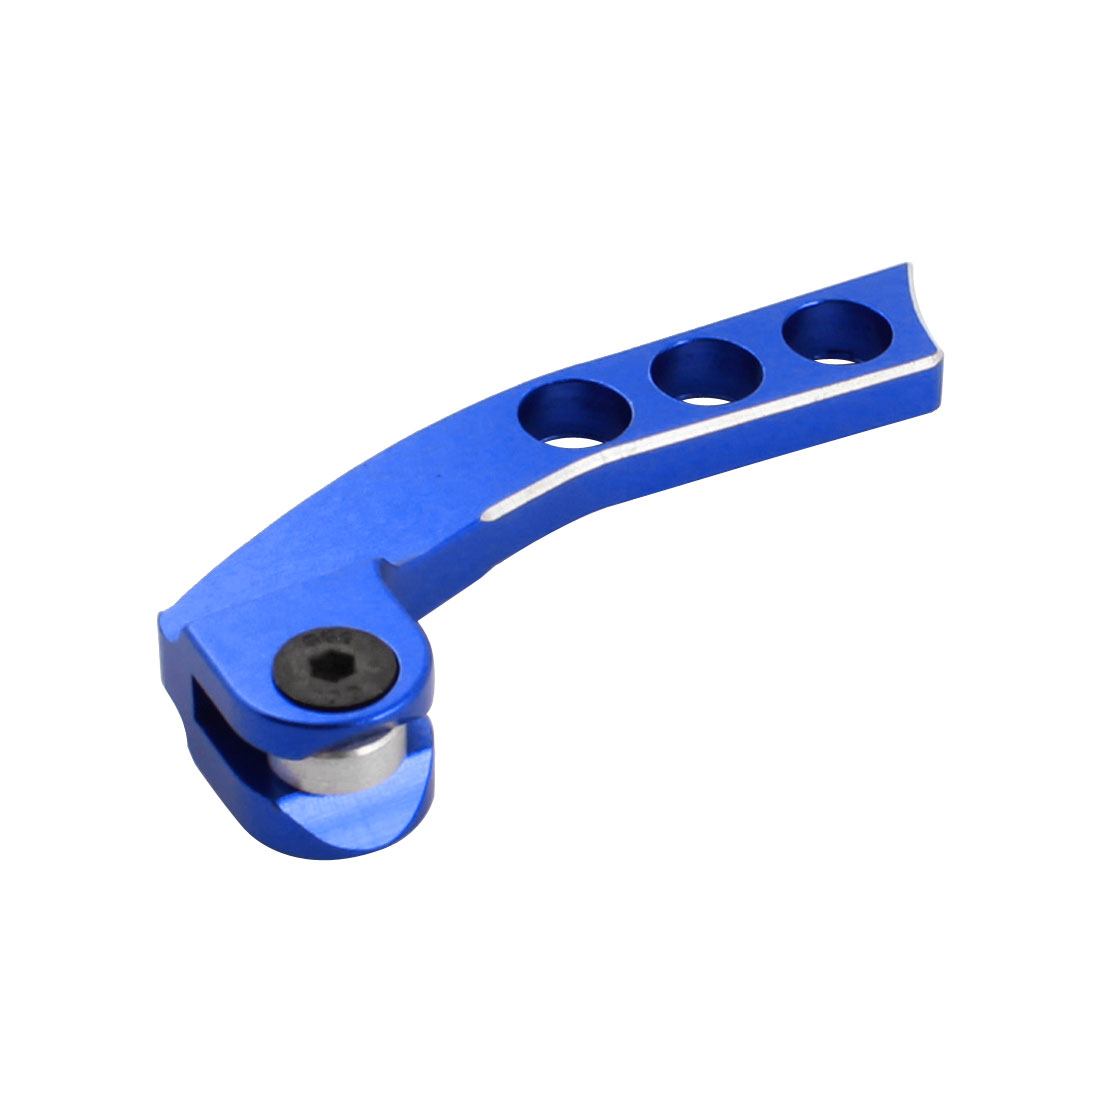 Replacement RC Transmitter Blue Aluminum Gravity Regulator Balancer Controlller for FPV Monitor Mounting